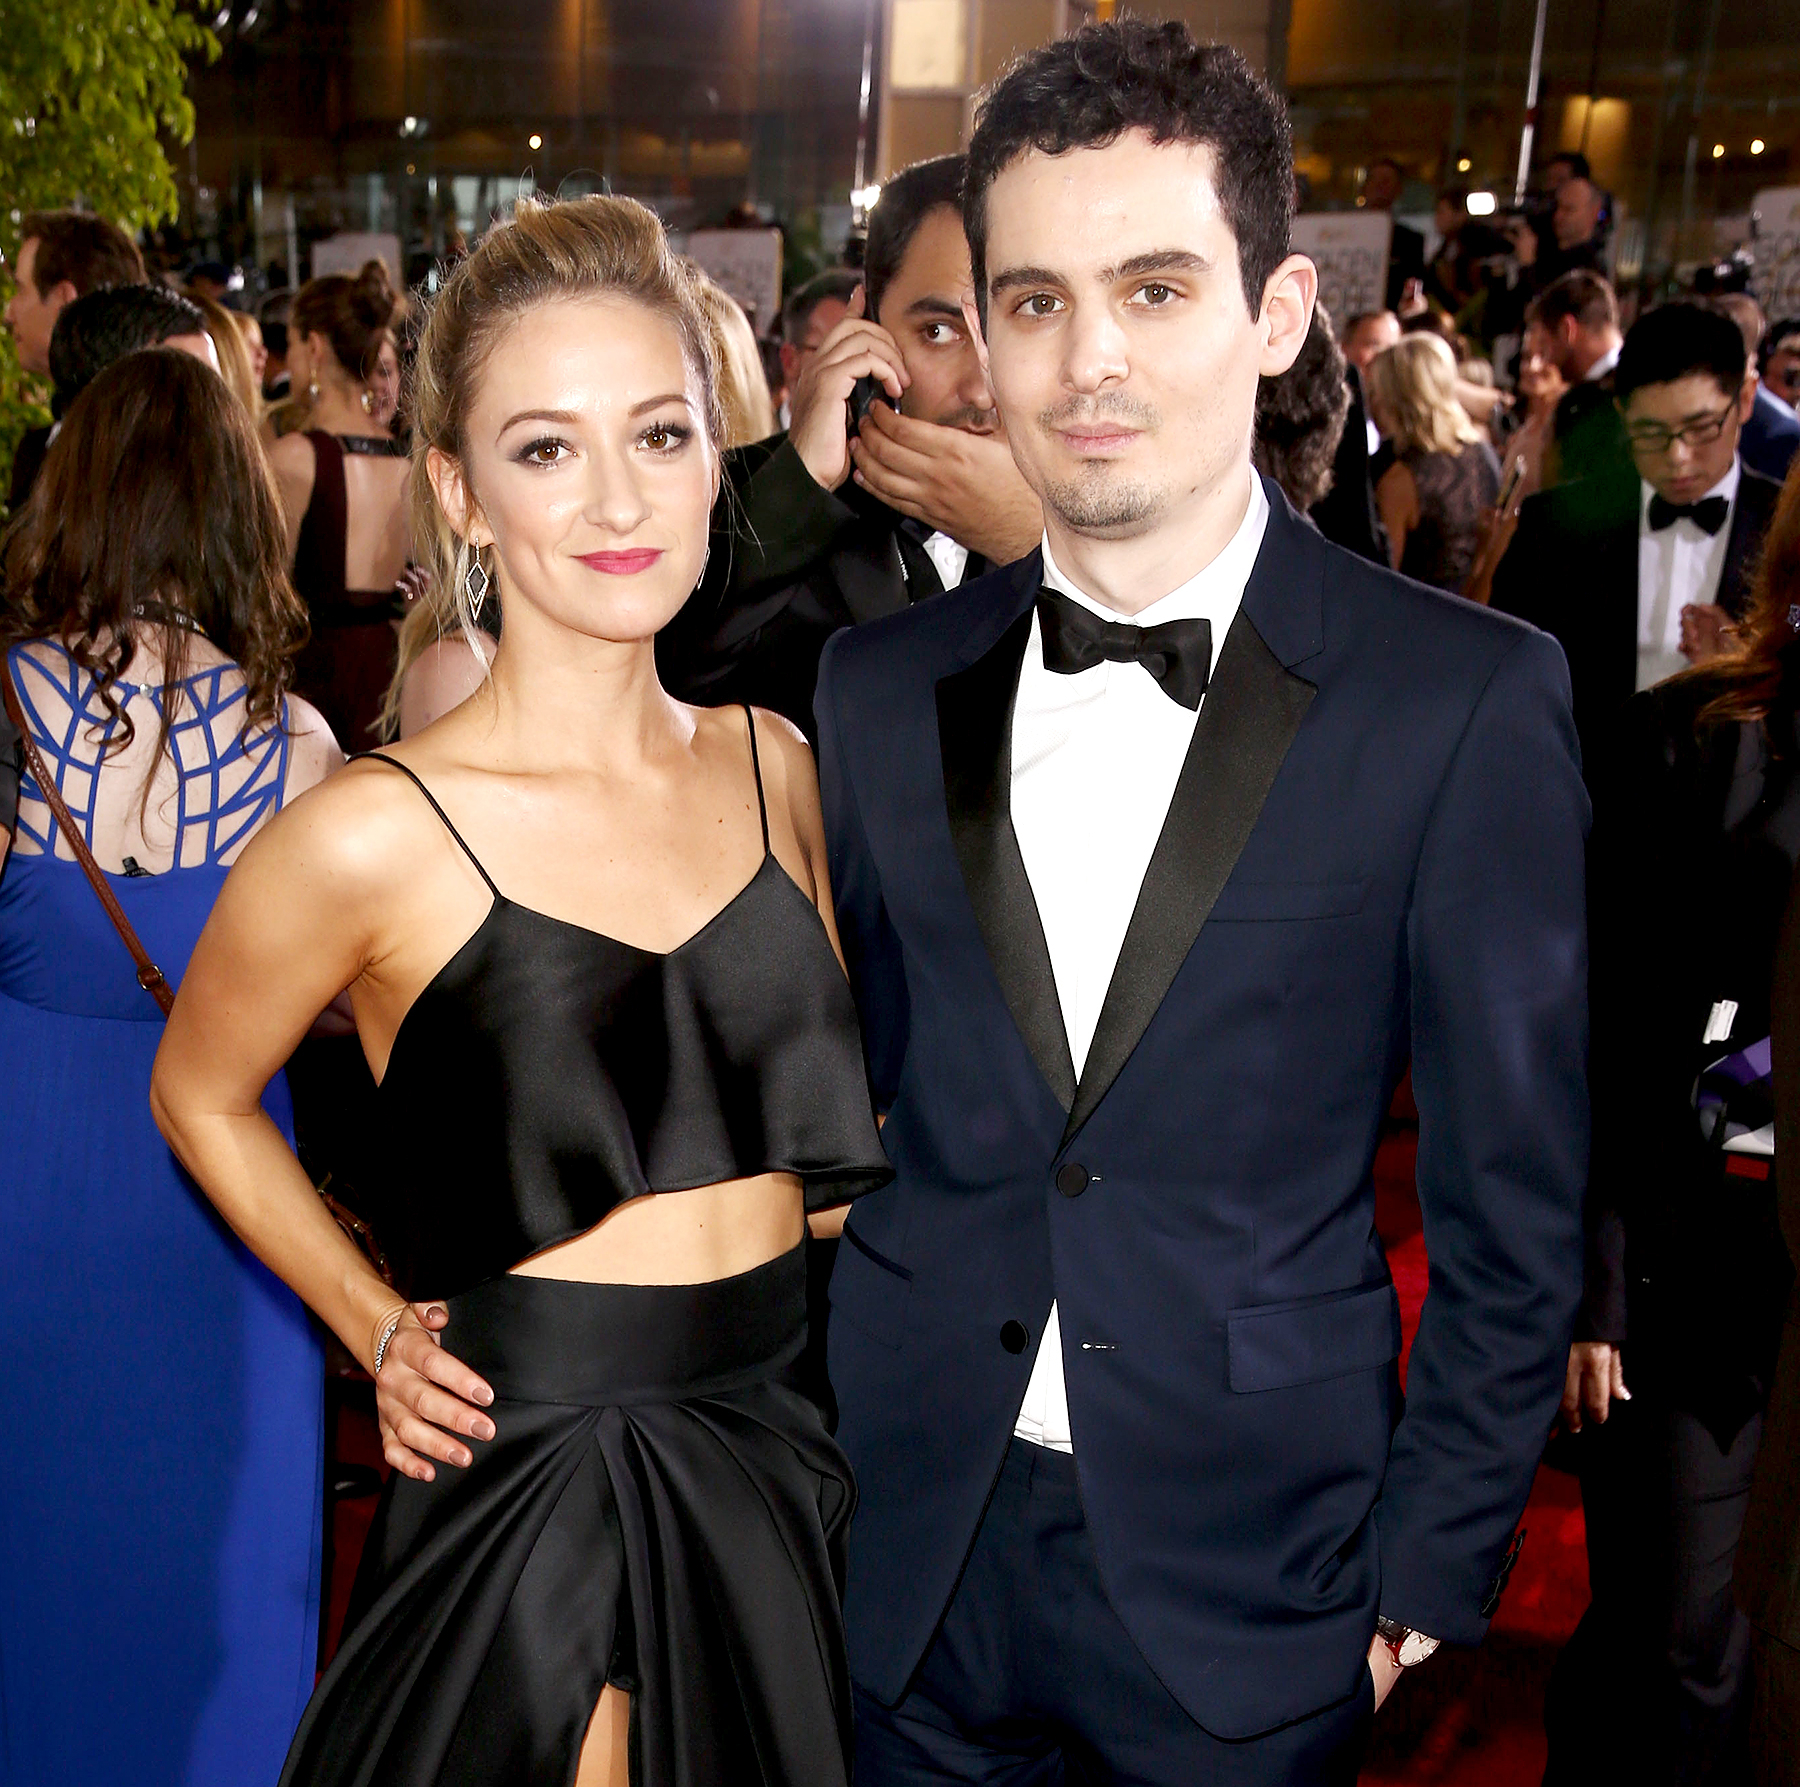 Olivia Hamilton and Damien Chazelle attend the 74th Annual Golden Globe Awards at the Beverly Hilton Hotel on Jan. 8, 2017, in Beverly Hills.